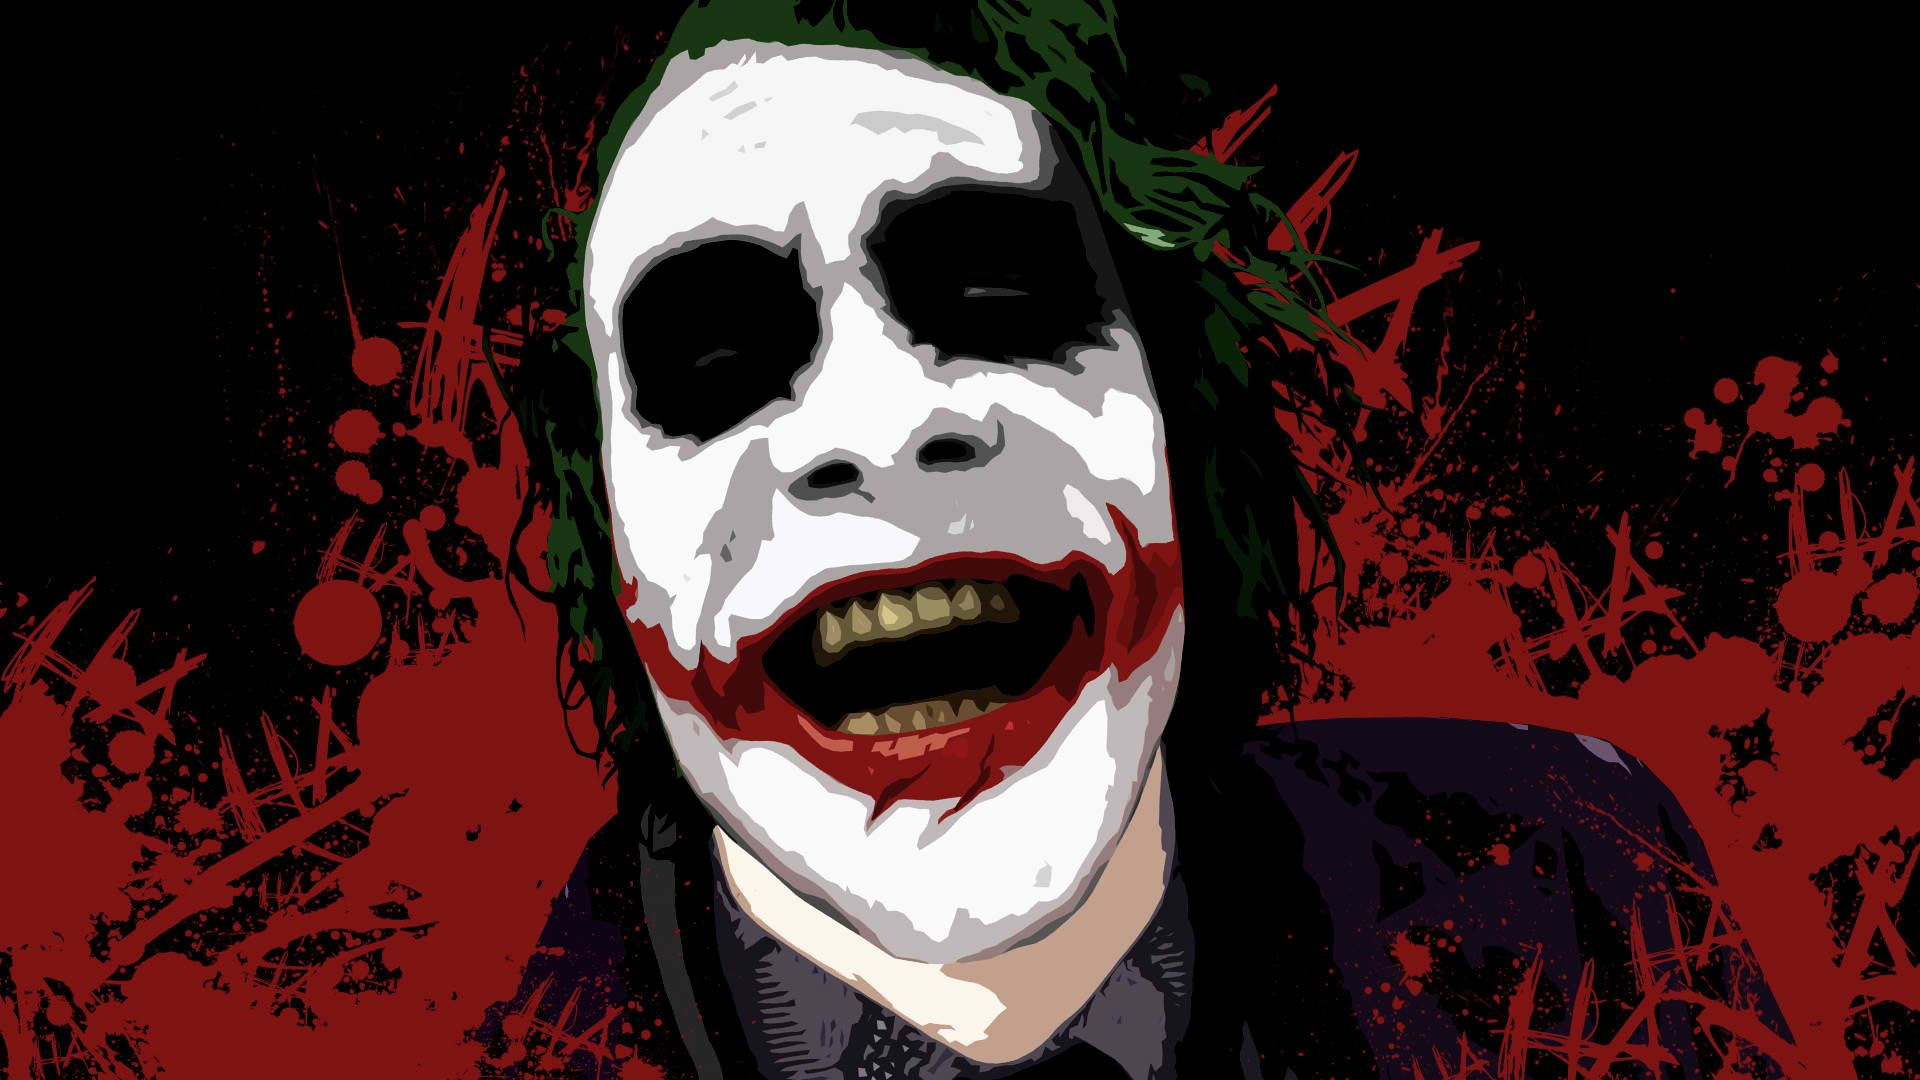 Dc comics the joker heath ledger batman the dark knight 1920x1080 wallpaper paint joker y cine - Joker brand wallpaper ...